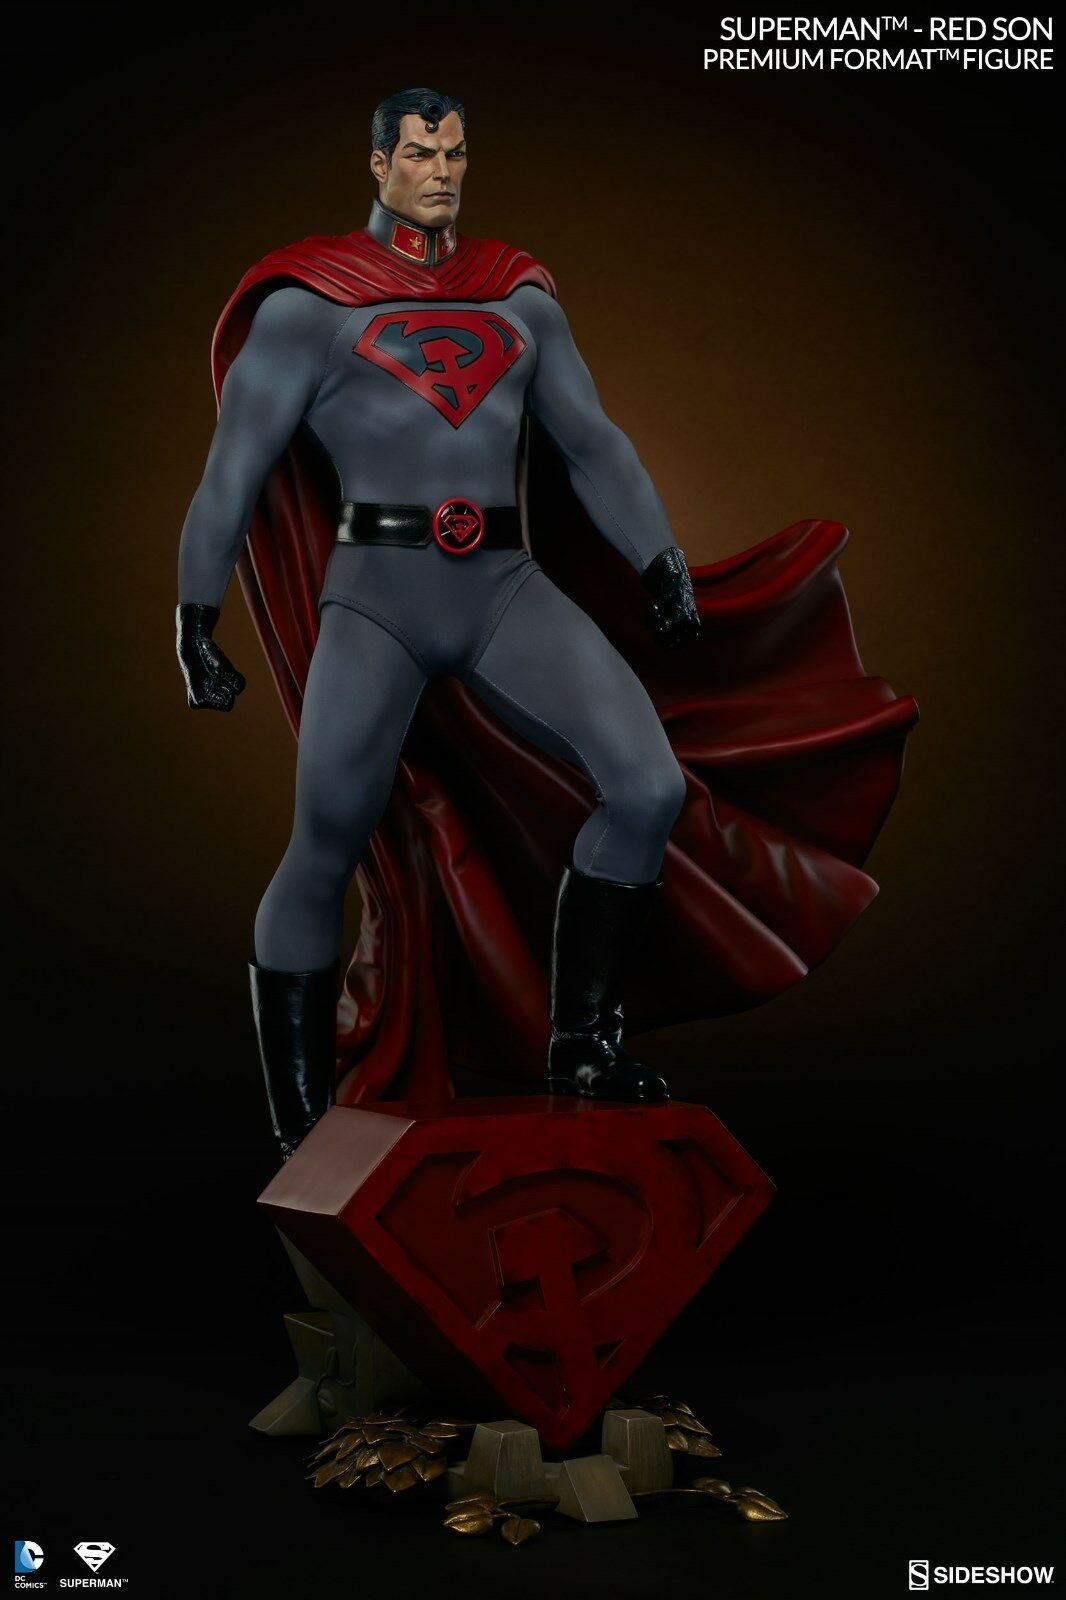 1/4 Scale Premium Format Superman rosso Son By Sideshow Collectibles